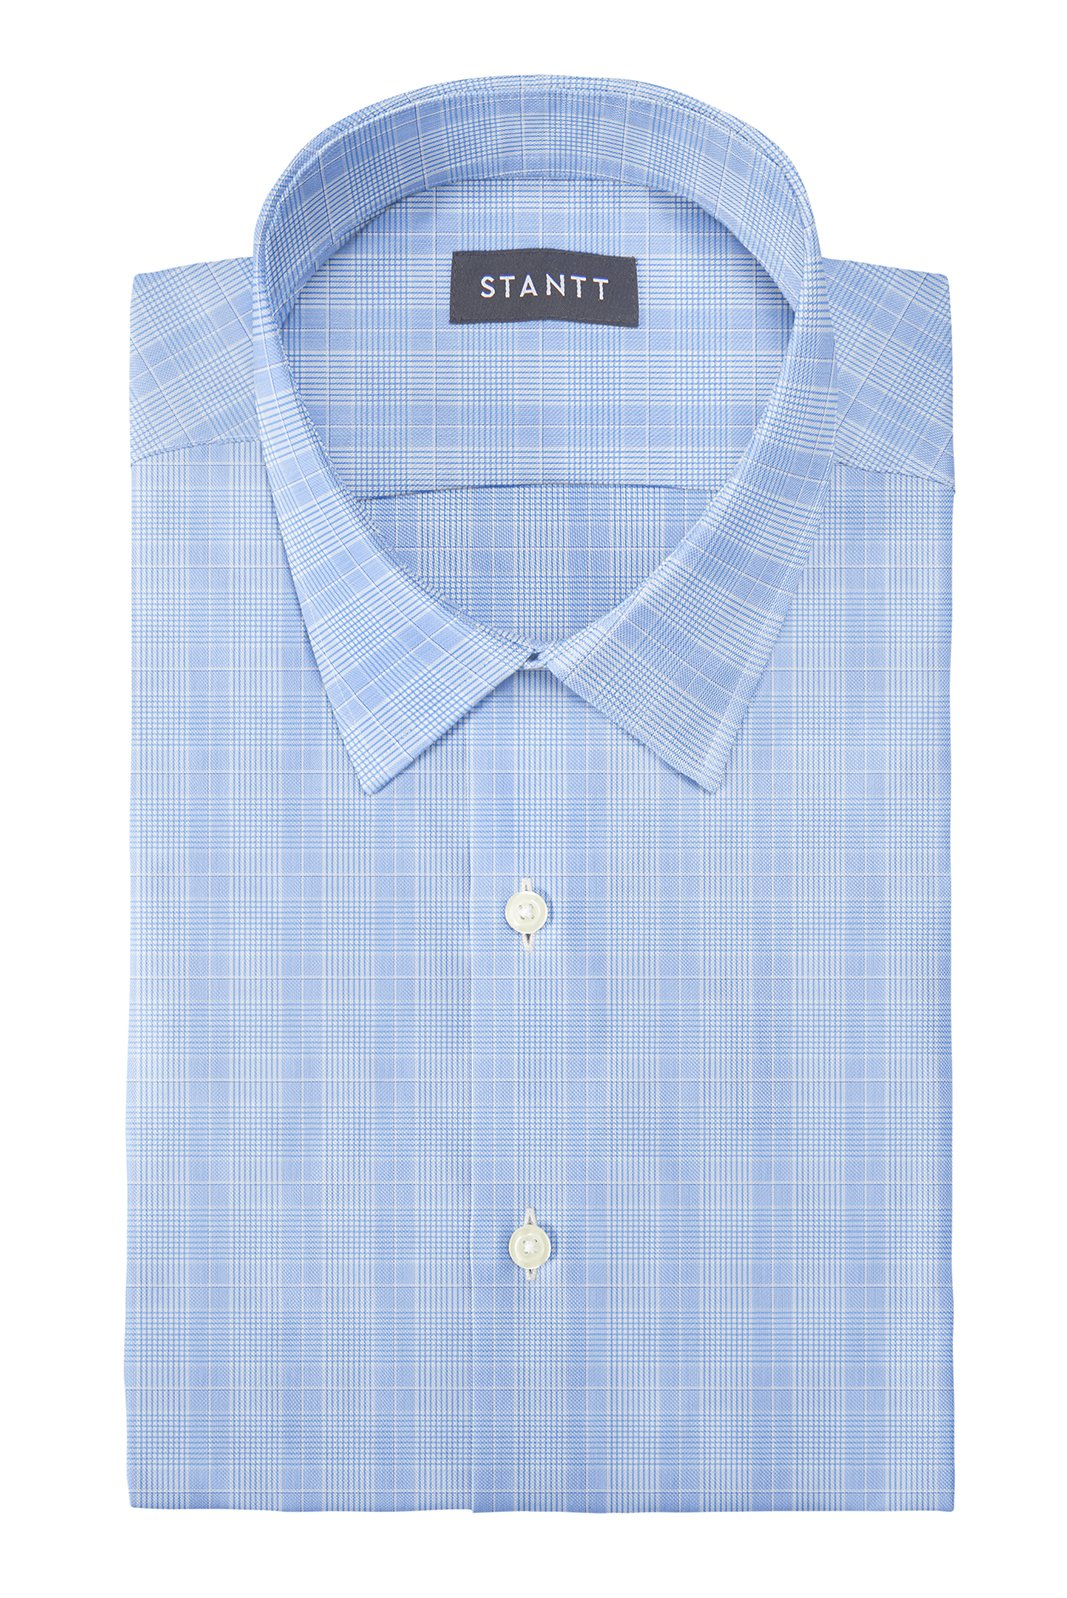 Bishop Blue Prince of Wales Check: Semi-Spread Collar, French Cuff